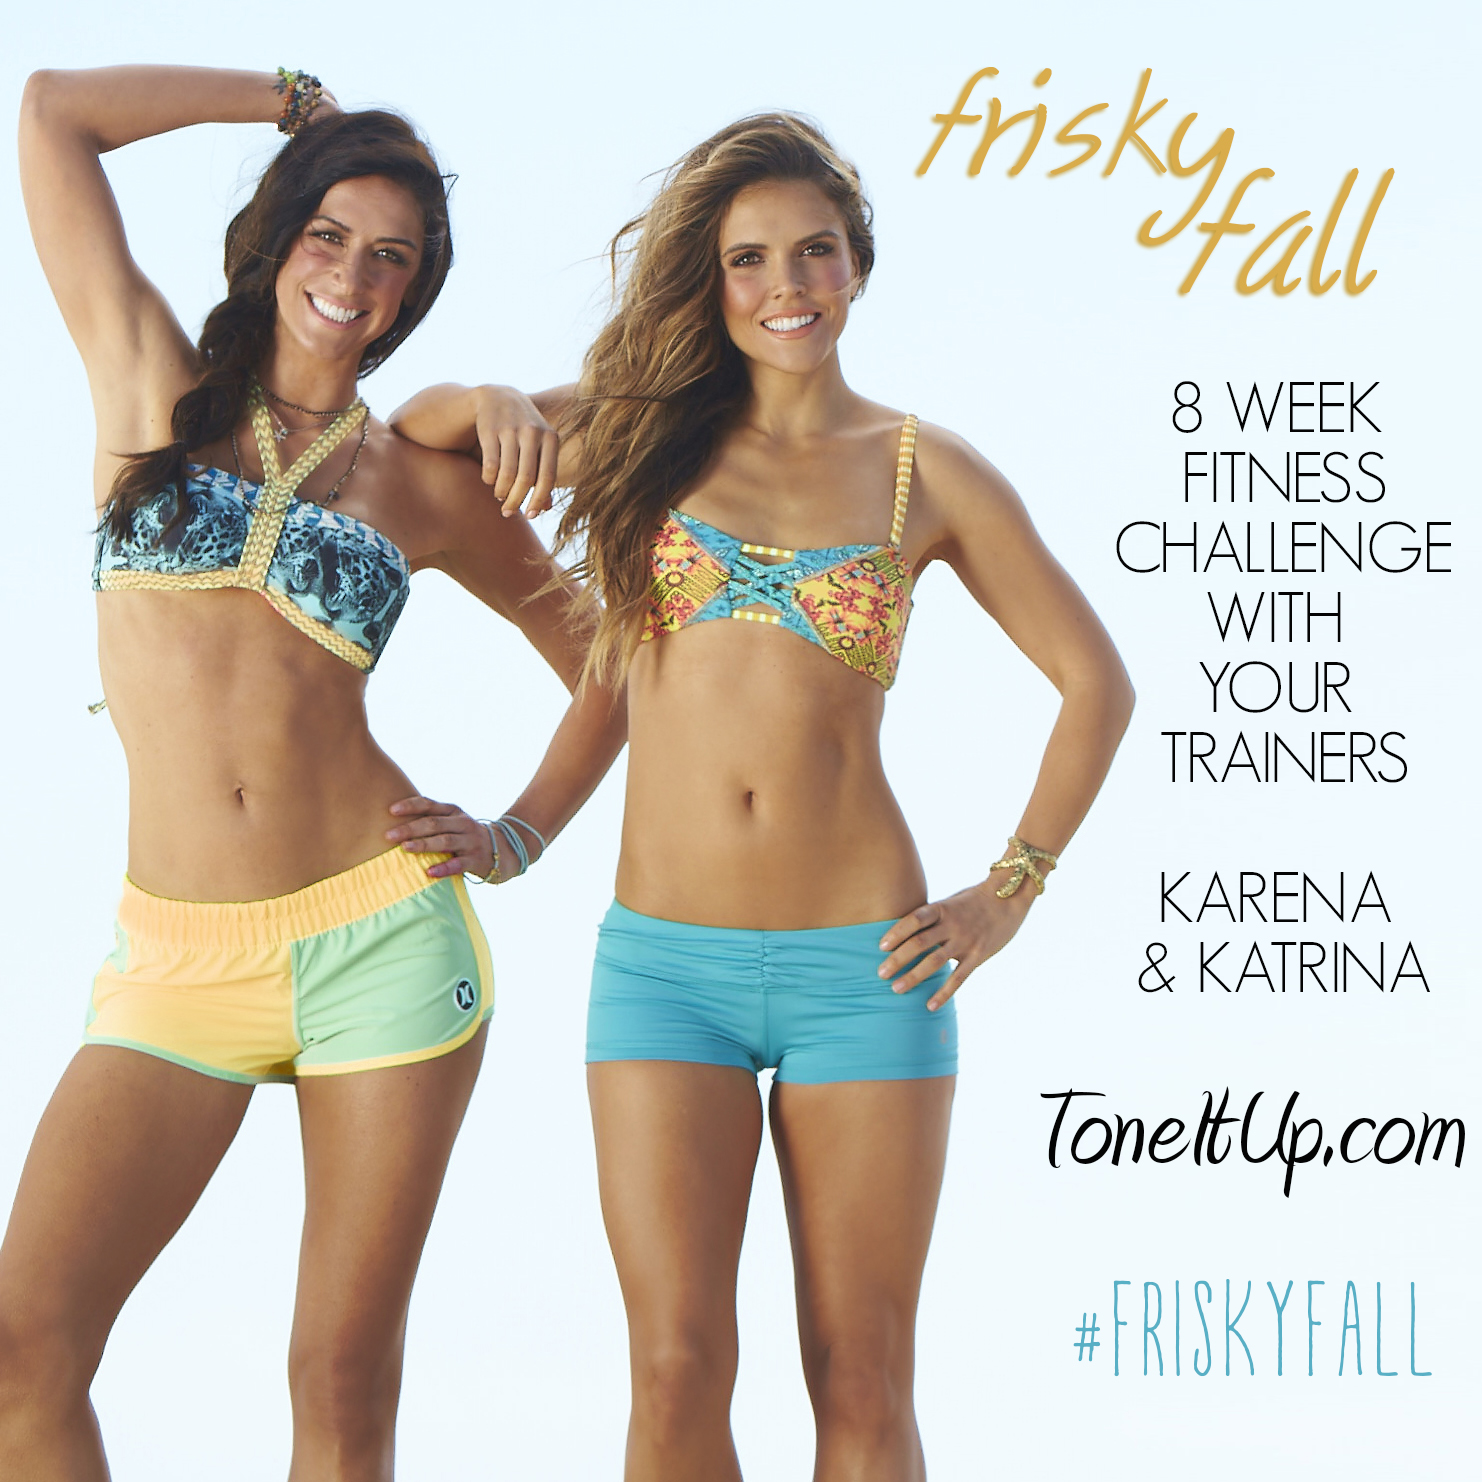 tone it up website